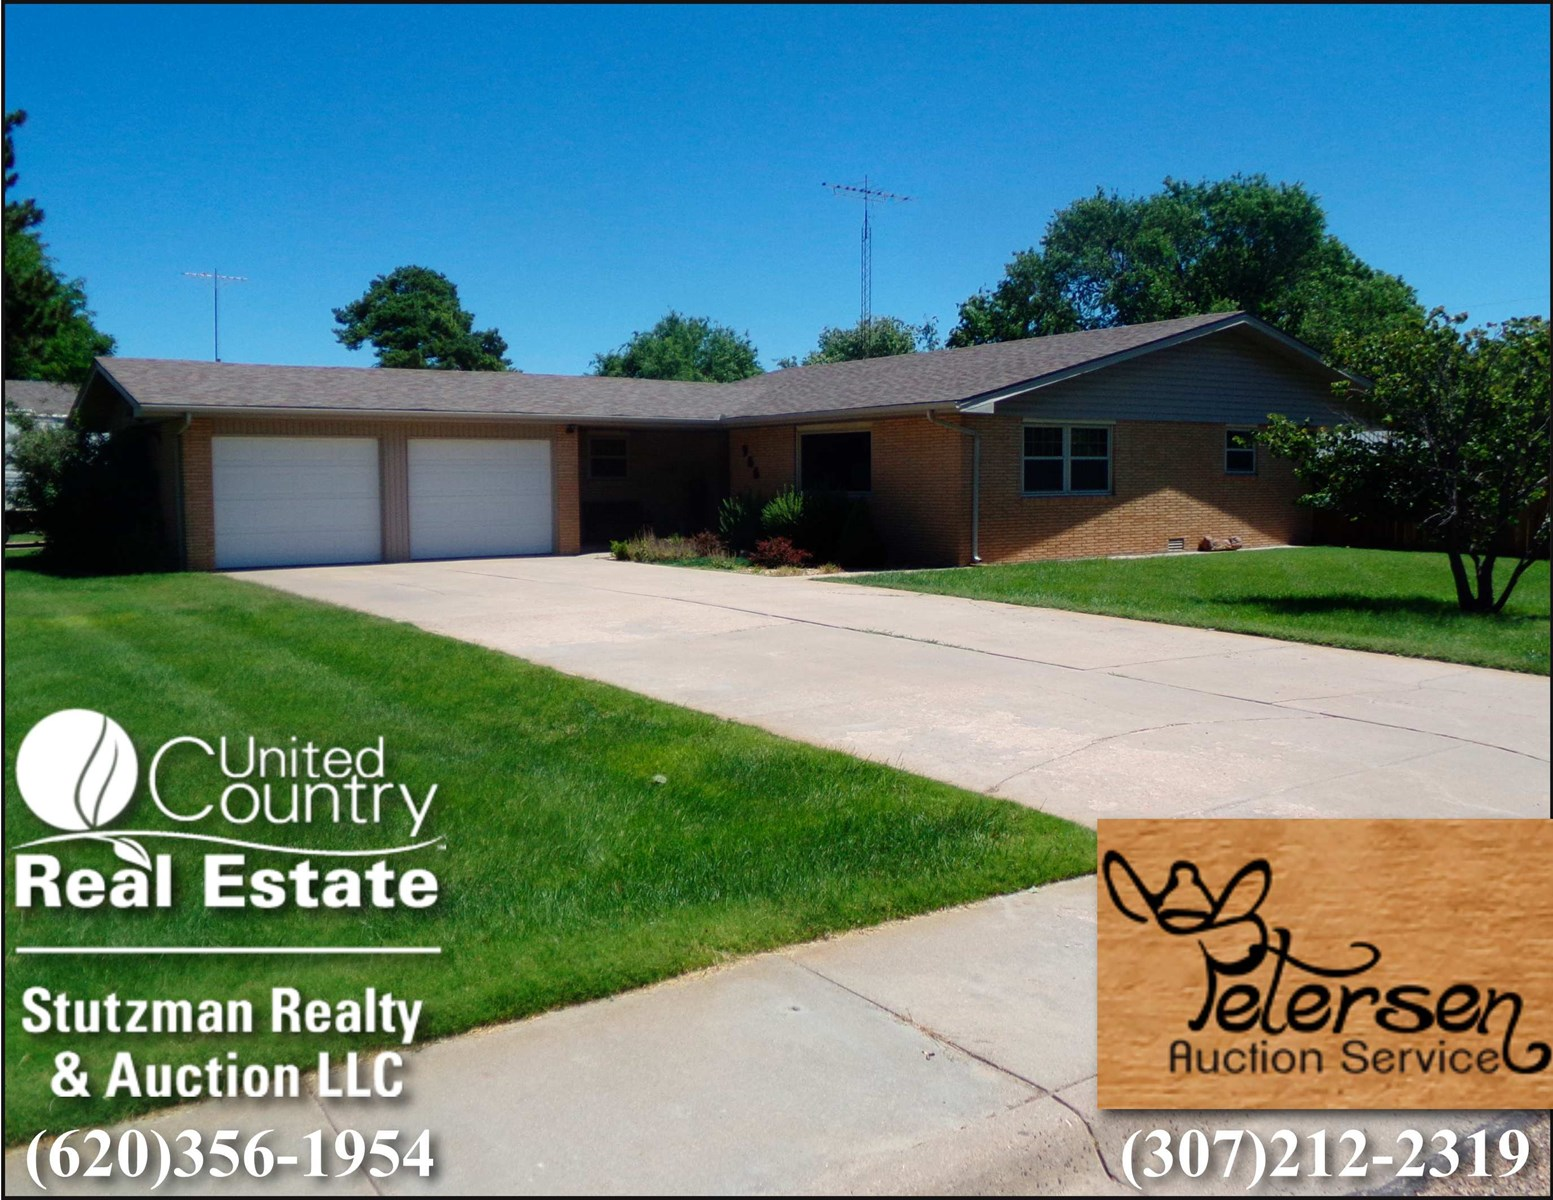 PUBLIC AUCTION - 902 N DURHAM ULYSSES, KS